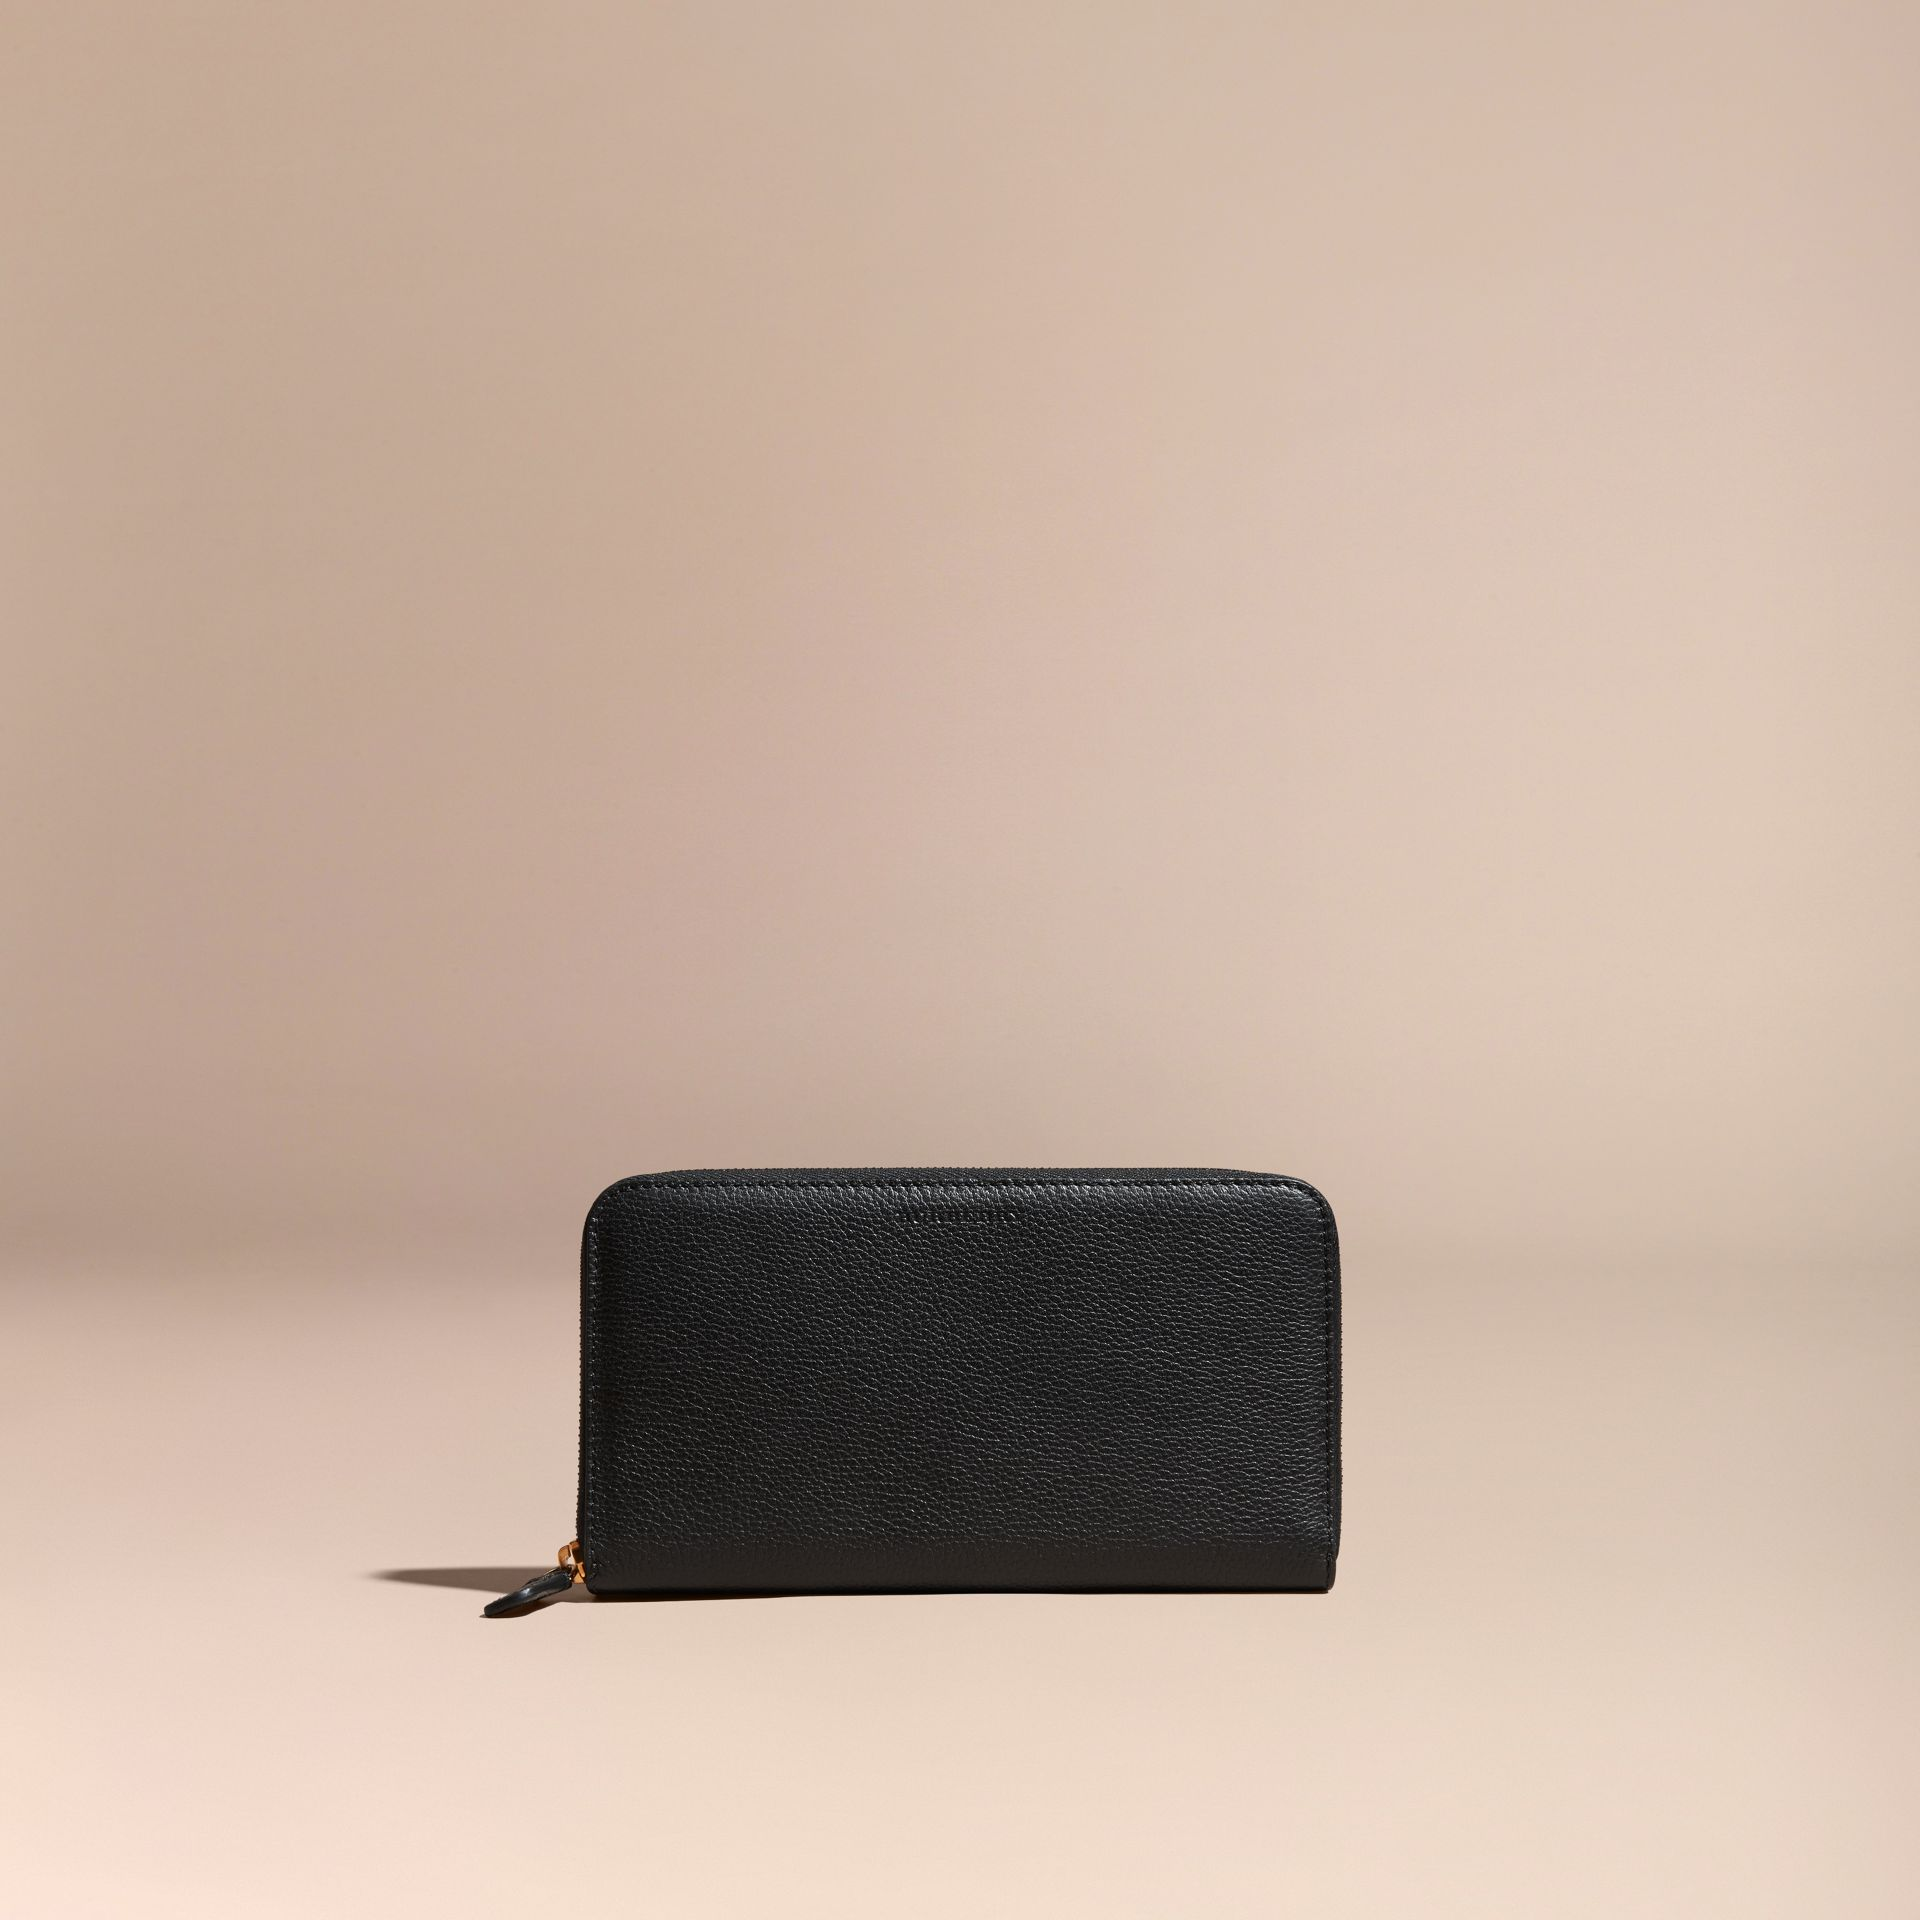 Black Grainy Leather Ziparound Wallet Black - gallery image 6